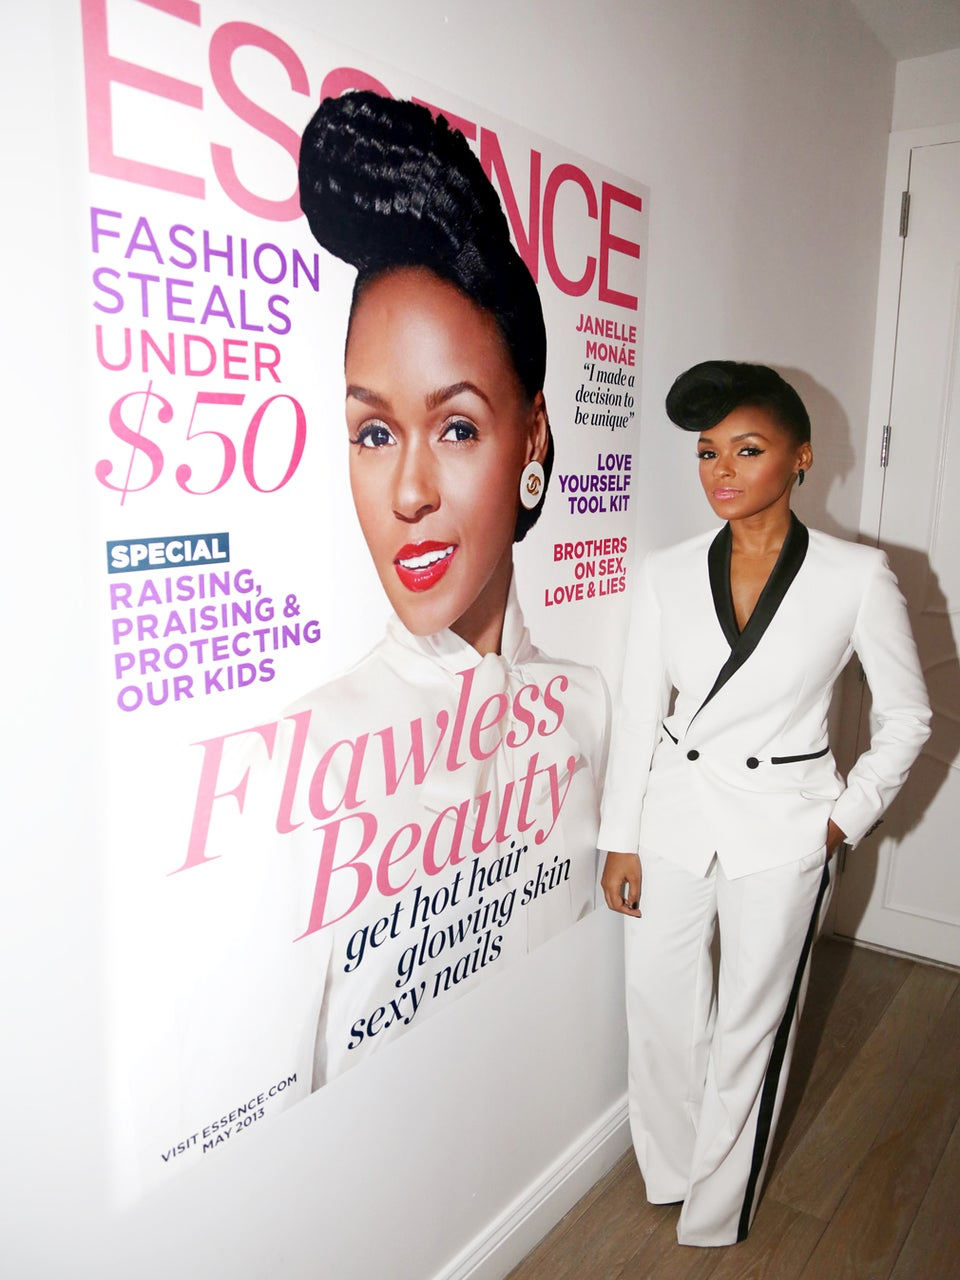 Janelle Monáe to Release New Single, 'Q.U.E.E.N.' Today